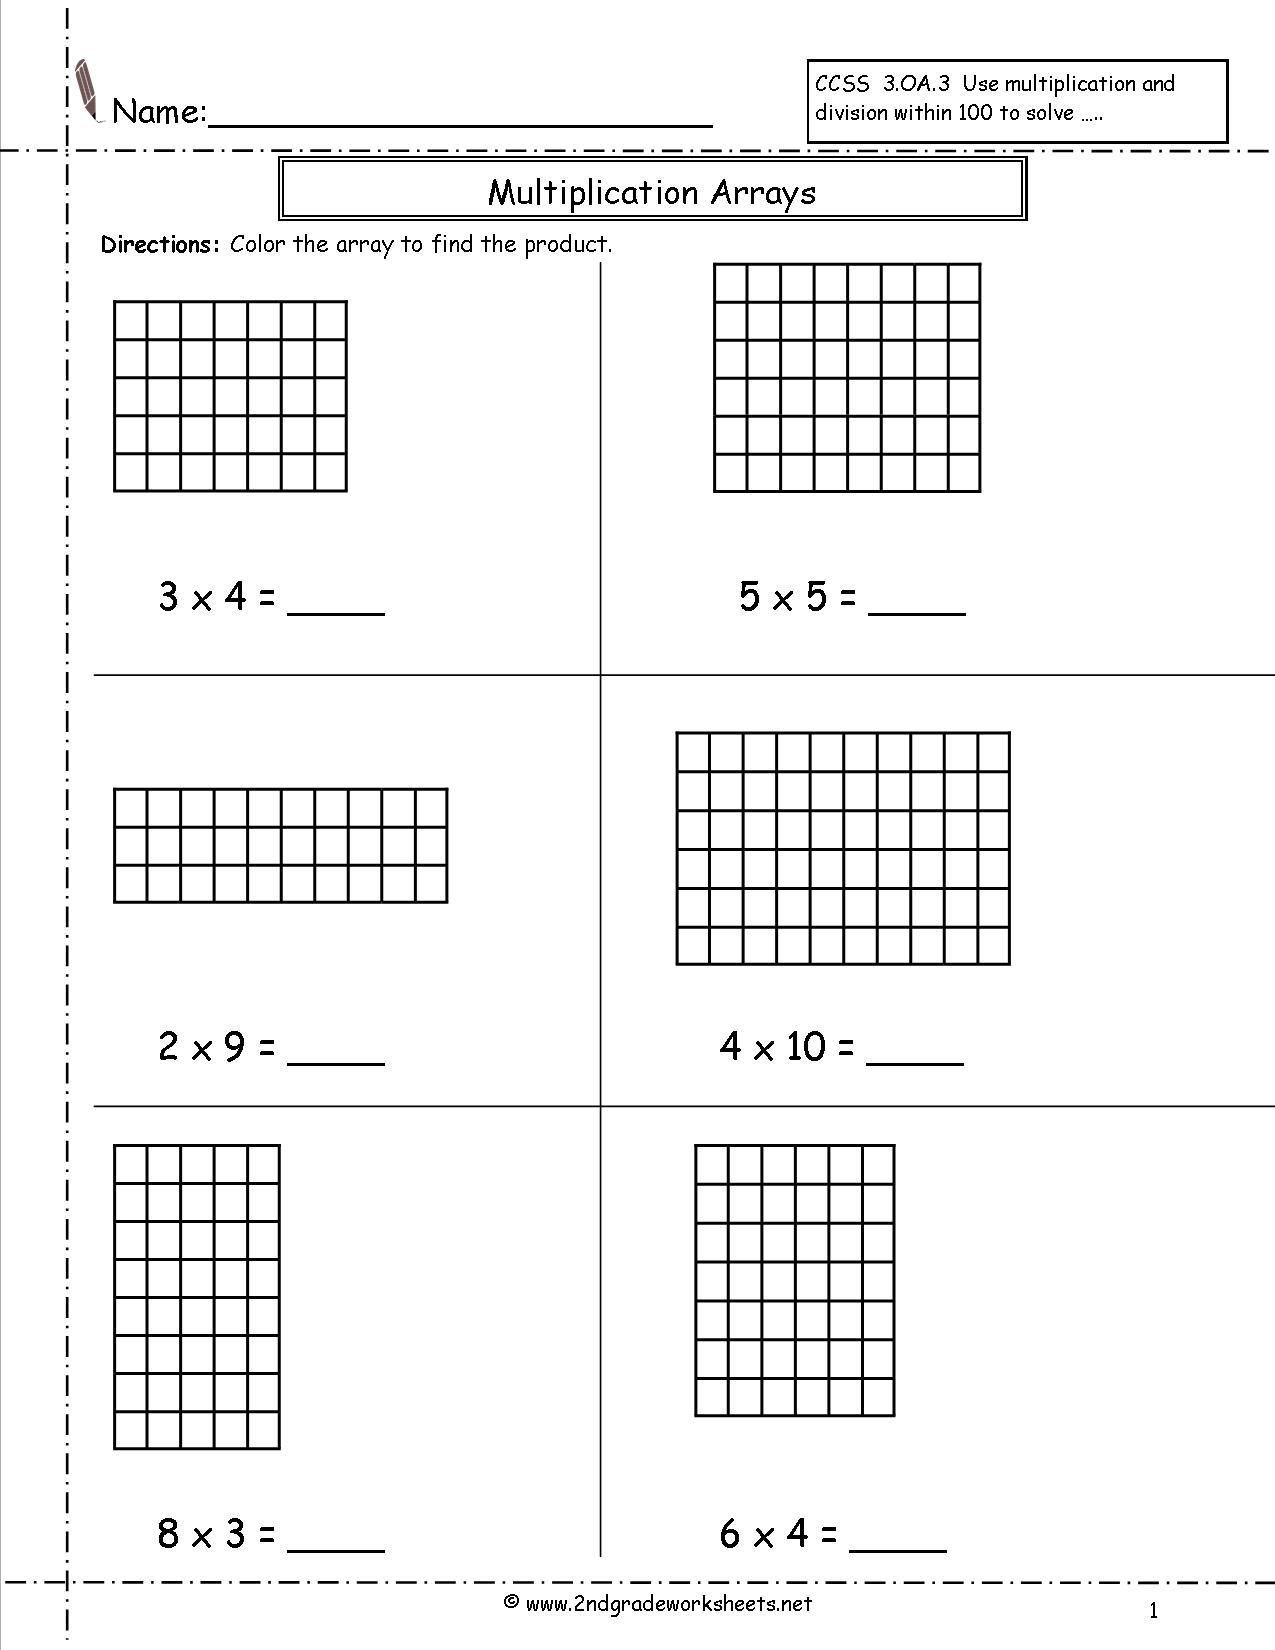 arrays worksheets  multiplication arrays worksheets  nouns verbs  arrays worksheets  multiplication arrays worksheets